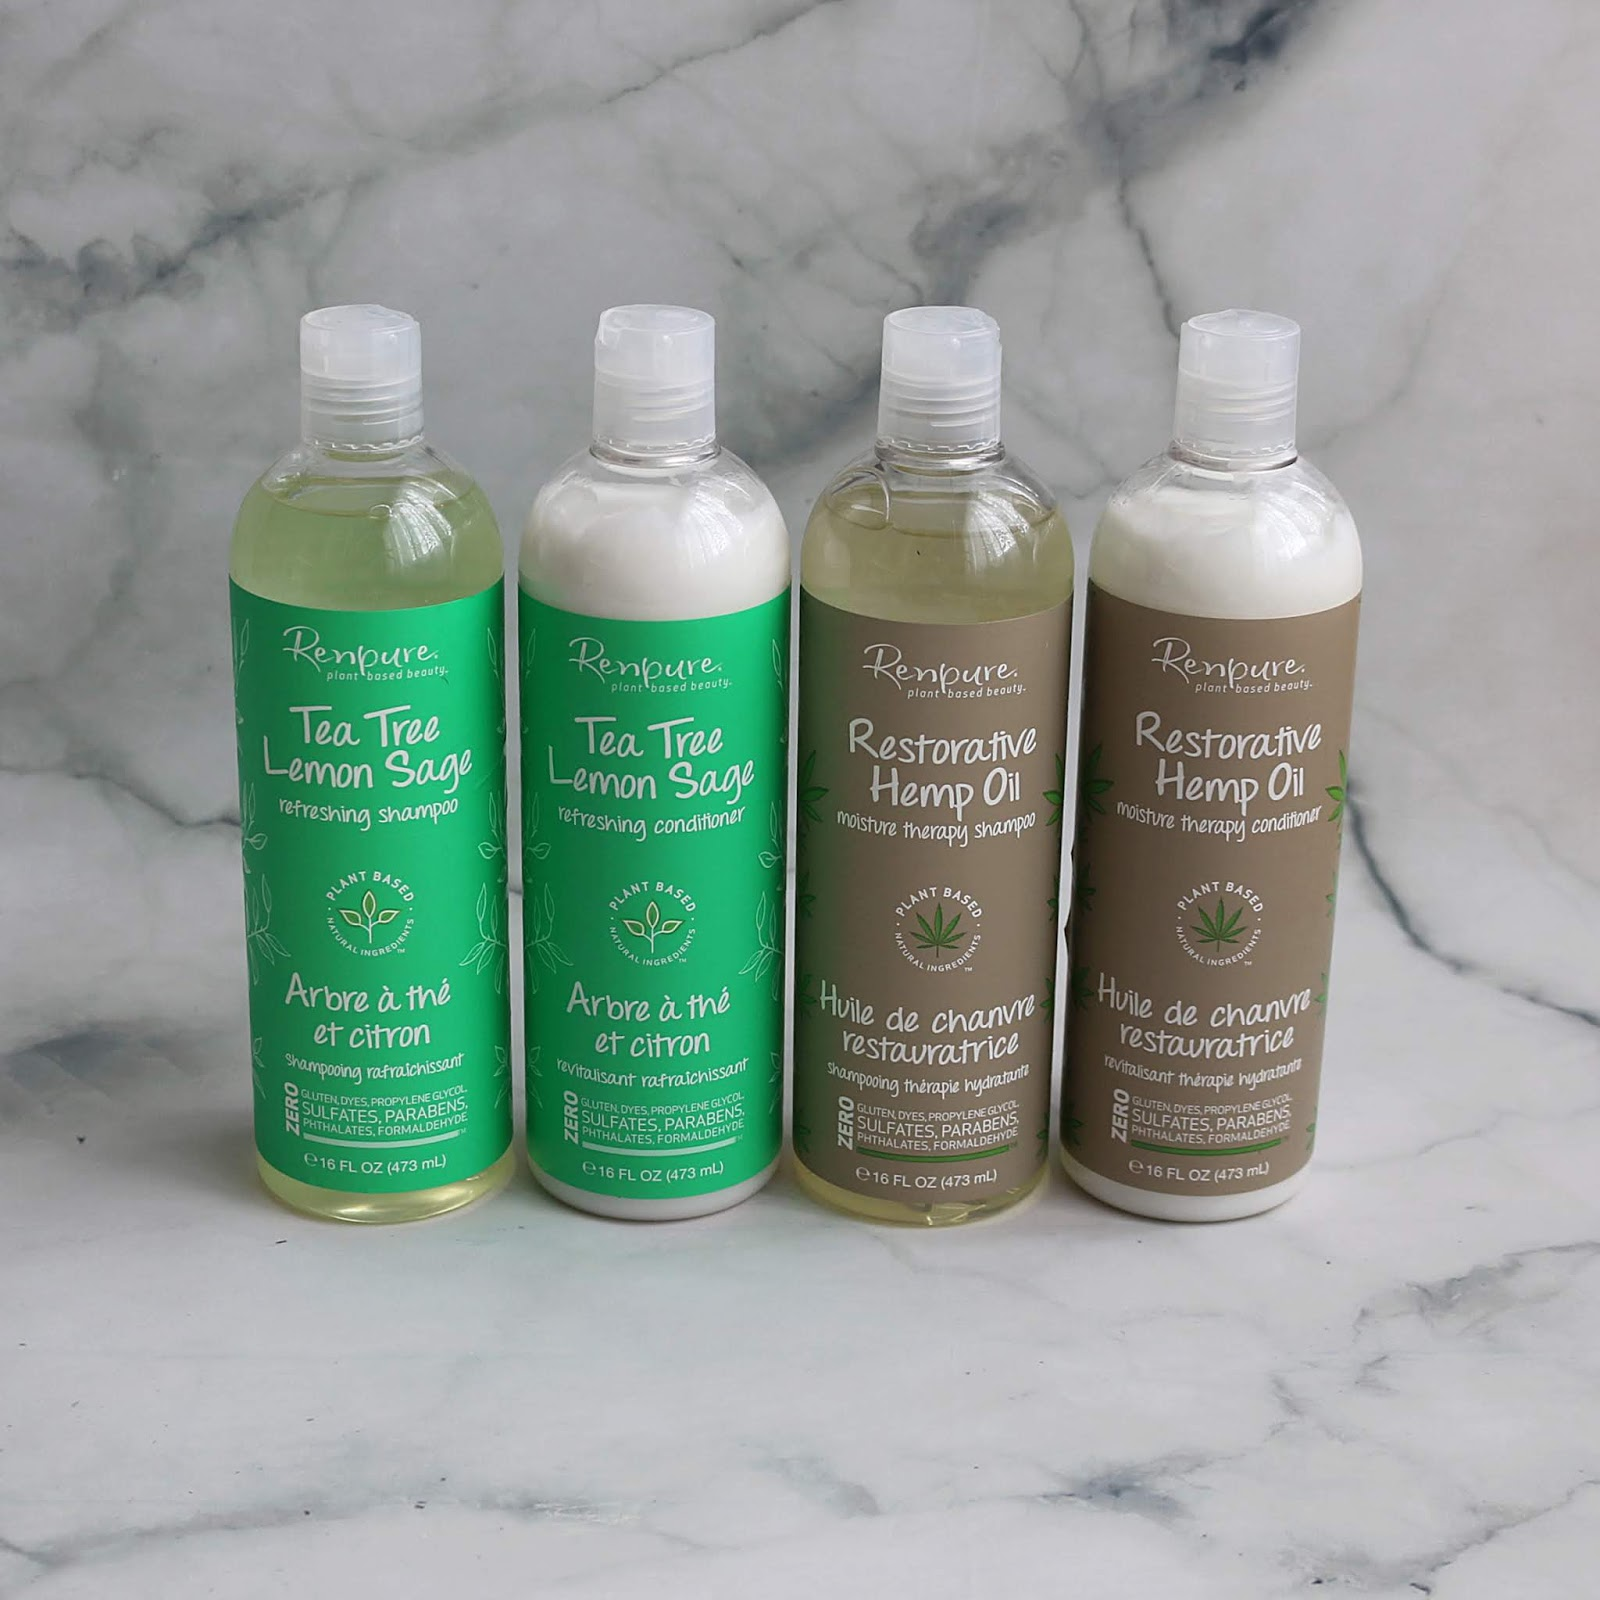 Renpure Tea Tree Lemon Sage Refreshing Shampoo Conditioner Restorative Hemp Oil Moisture Therapy